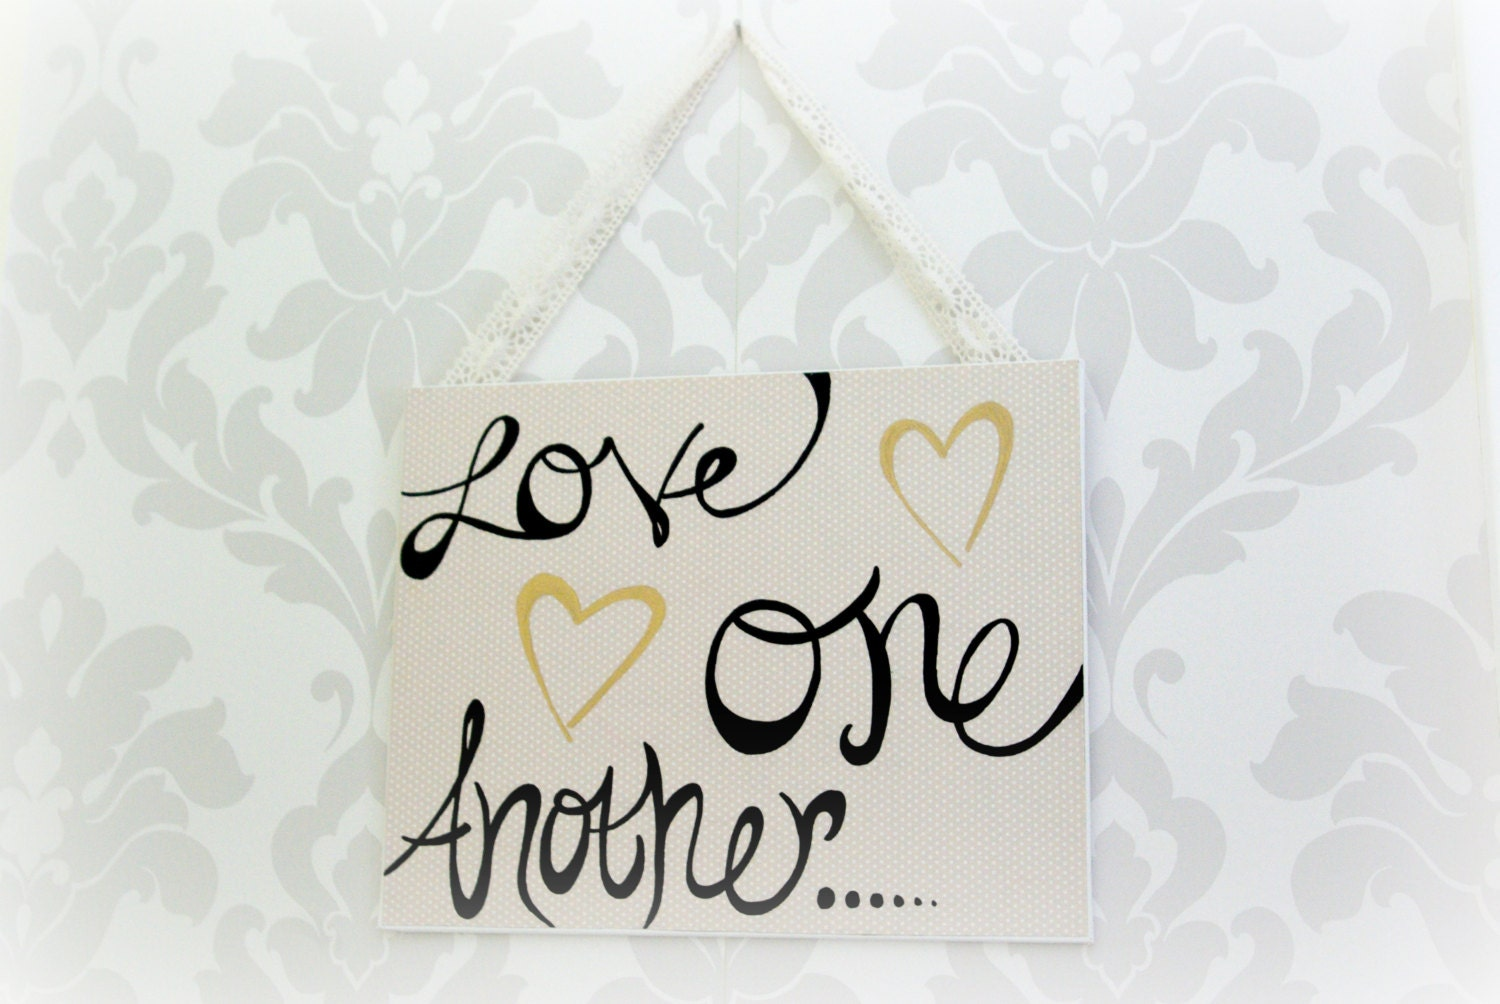 Quotes About Uplifting One Another: Love One Another Art Quotes Bible Verse Inspirational Art